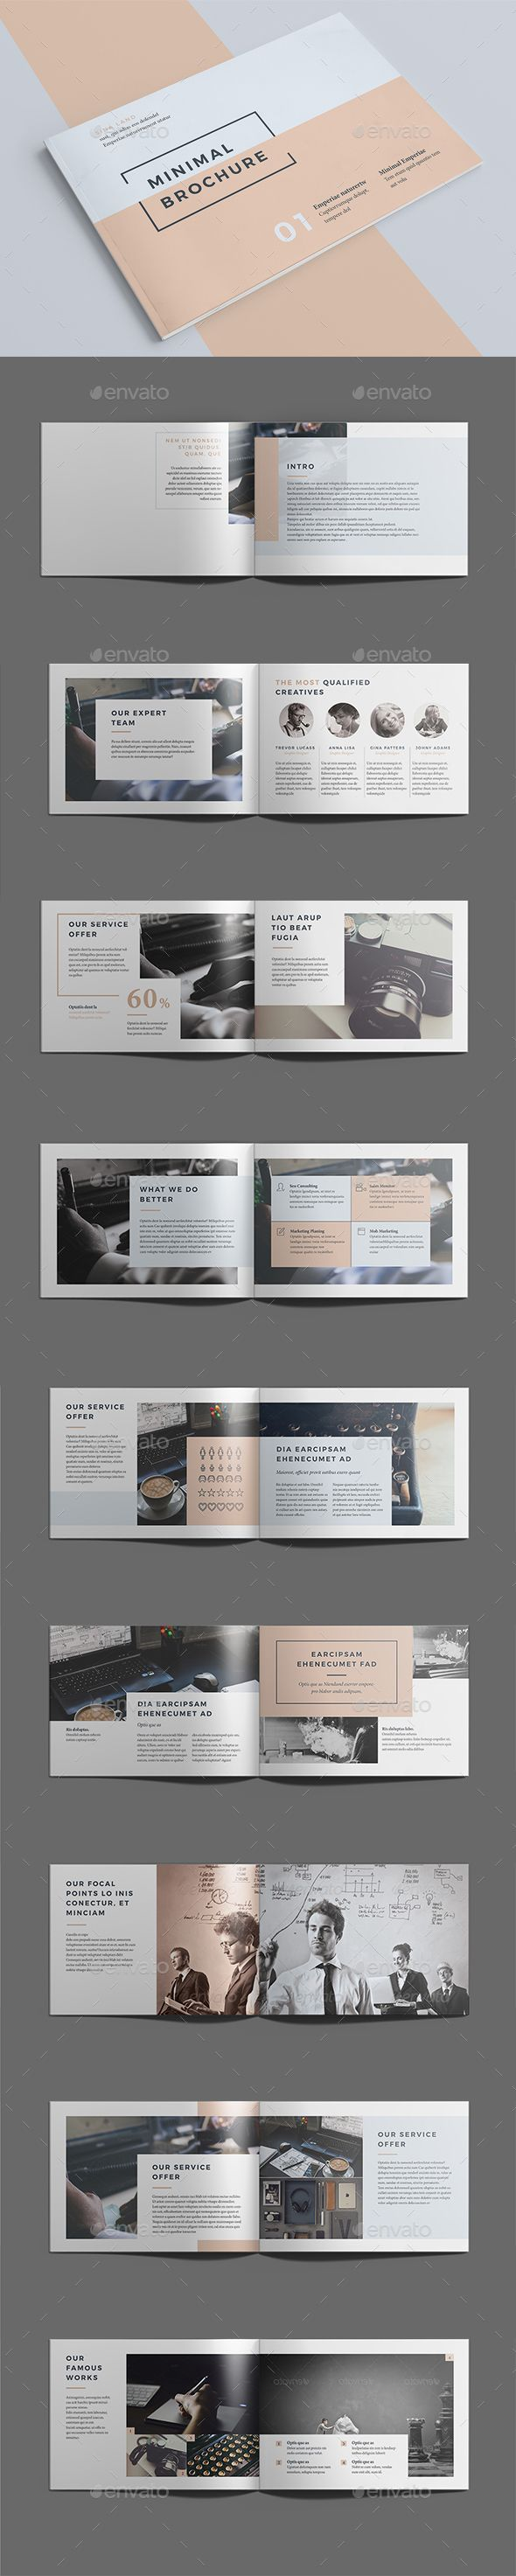 Minimal Brochure Vol II